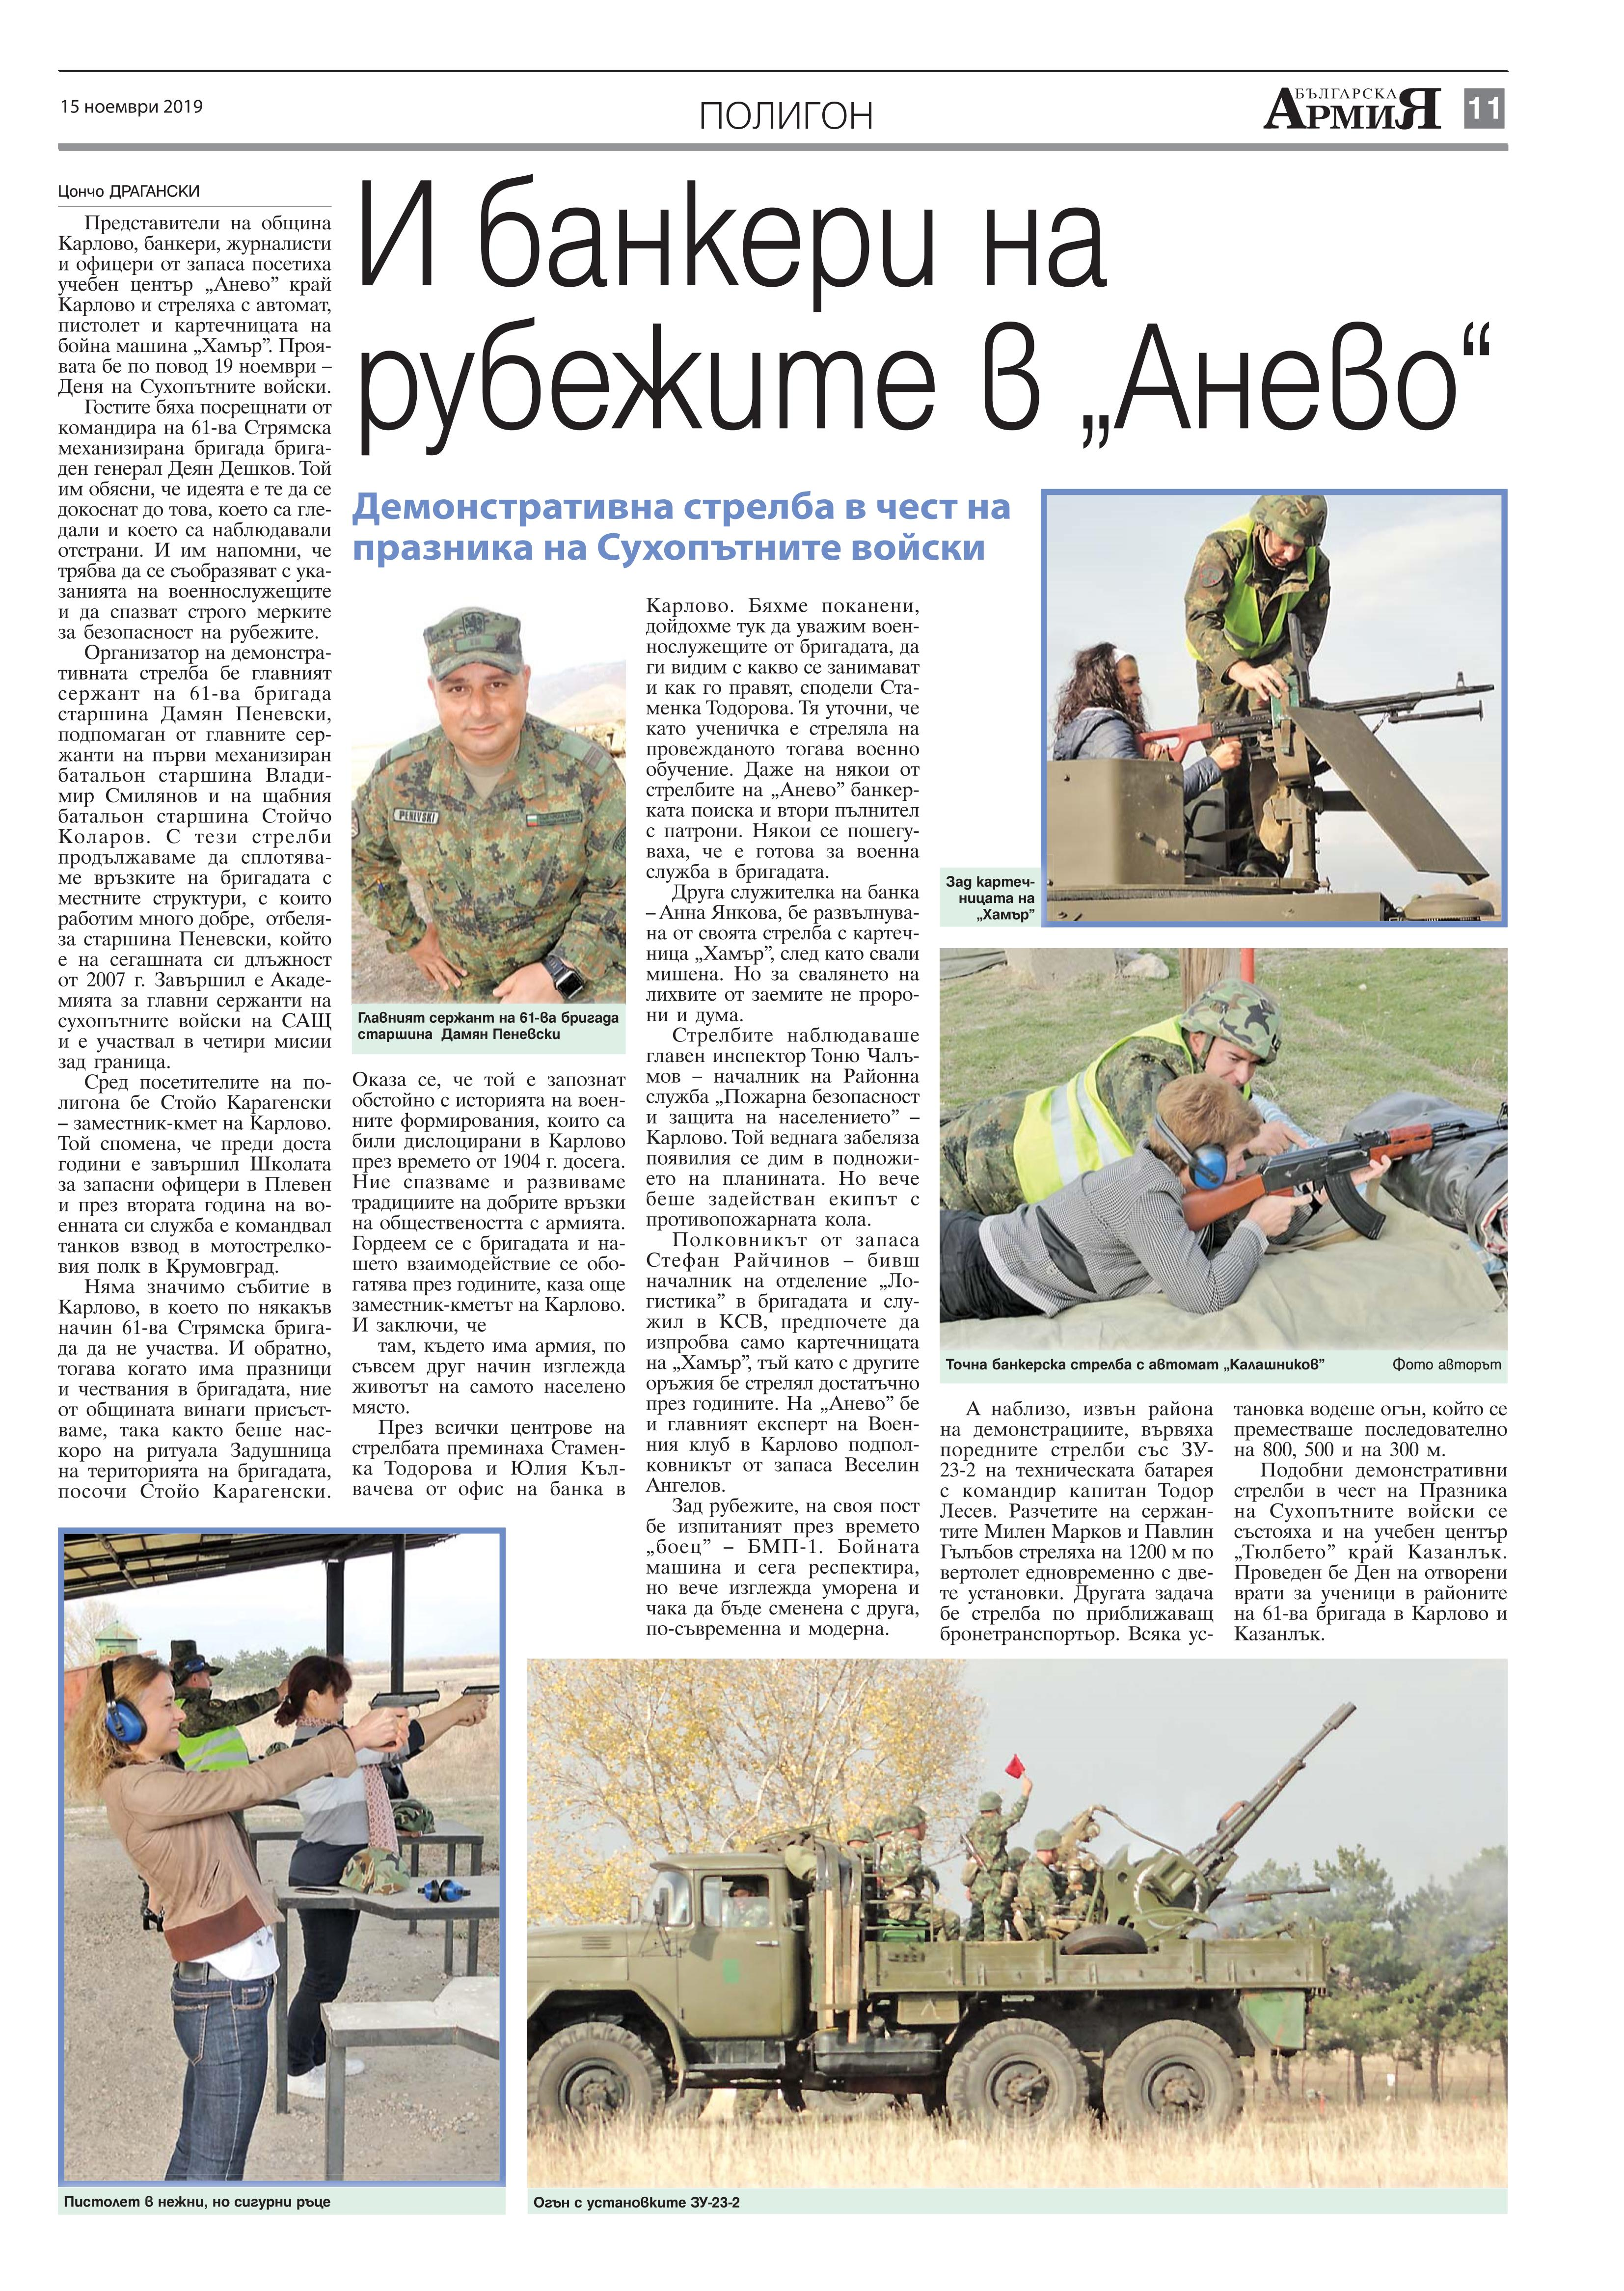 https://armymedia.bg/wp-content/uploads/2015/06/11.page1_-116.jpg